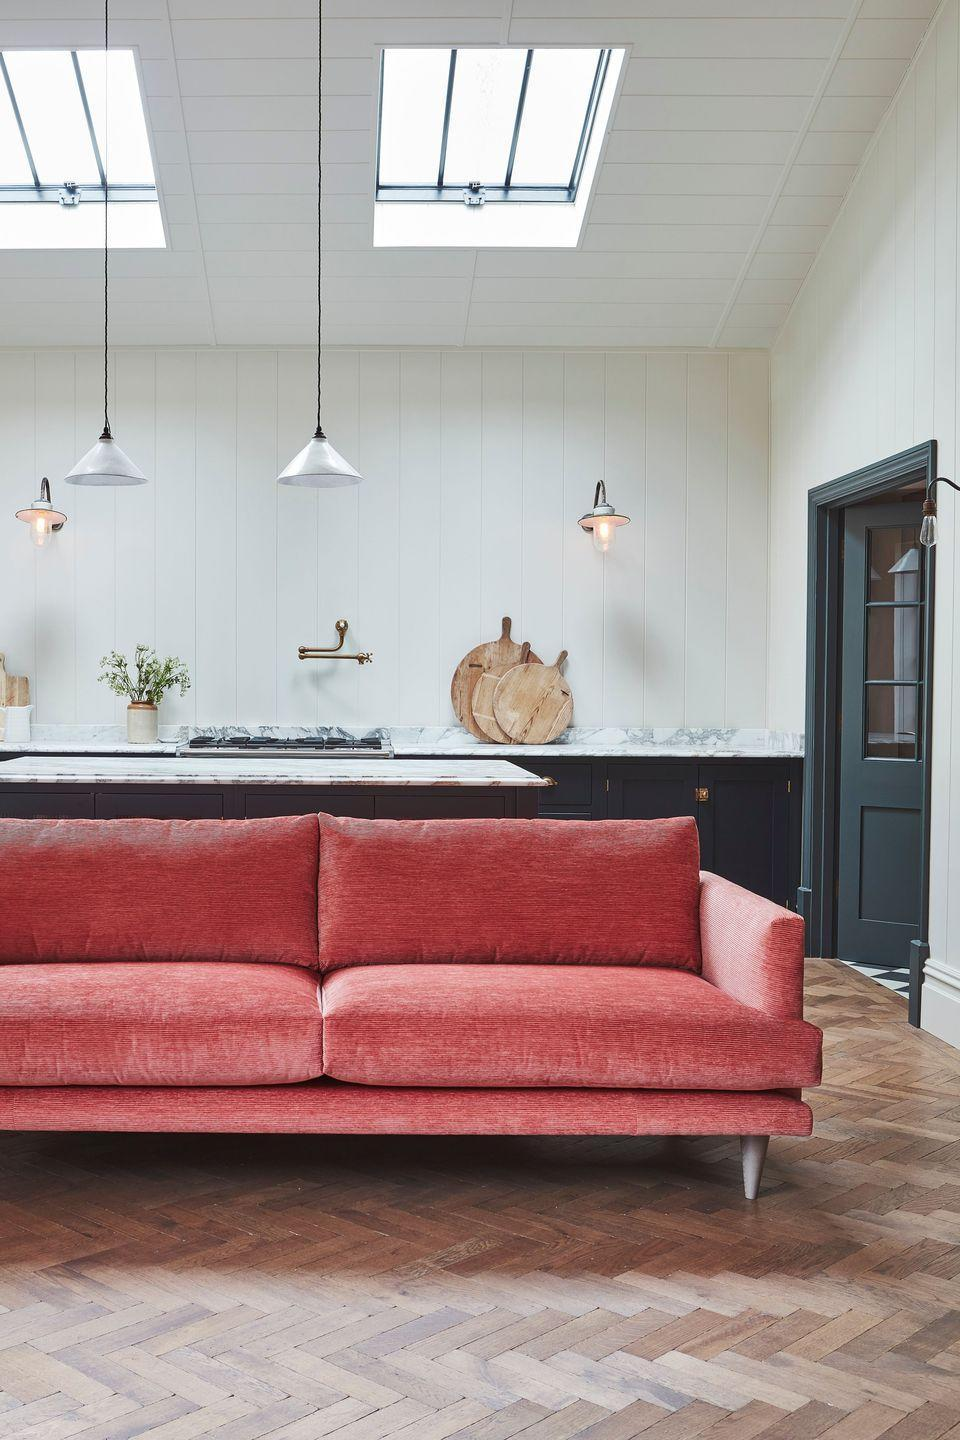 """<p>Red sofas can uplift moodier colour palettes used throughout a room, such as dark walls or deep mahogany floors. A sophisticated upholstery, such as a plush velvet or two-toned wool, offsets any risk of your reds appearing too bright or garish. </p><p>Pictured: <a href=""""https://go.redirectingat.com?id=127X1599956&url=https%3A%2F%2Fwww.darlingsofchelsea.co.uk%2Fmiddleton-range&sref=https%3A%2F%2Fwww.countryliving.com%2Fuk%2Fhomes-interiors%2Finteriors%2Fg37335592%2Fmost-popular-sofa-colours%2F"""" rel=""""nofollow noopener"""" target=""""_blank"""" data-ylk=""""slk:Middleton Sofa at Darlings of Chelsea"""" class=""""link rapid-noclick-resp"""">Middleton Sofa at Darlings of Chelsea</a></p>"""